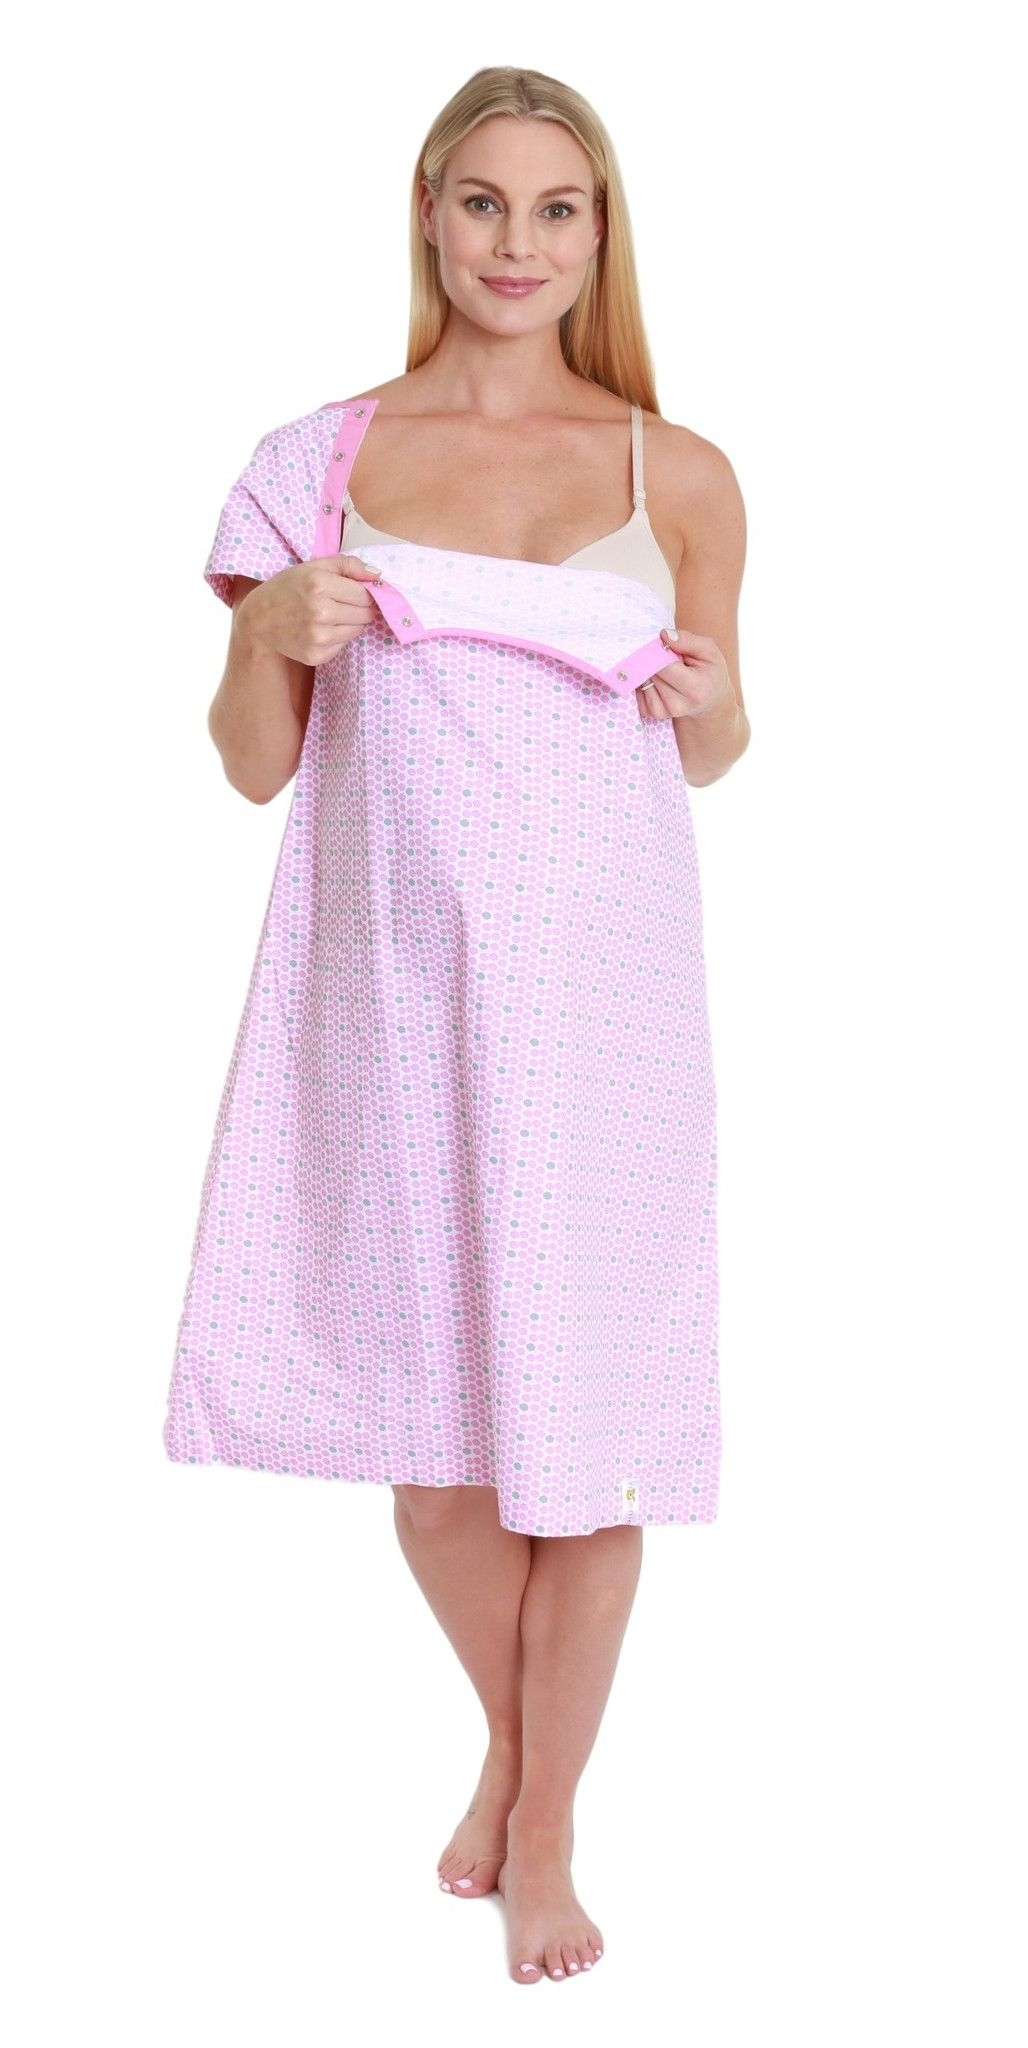 Chloe Gownie Maternity Delivery Labor Hospital Birthing Gown | Not ...